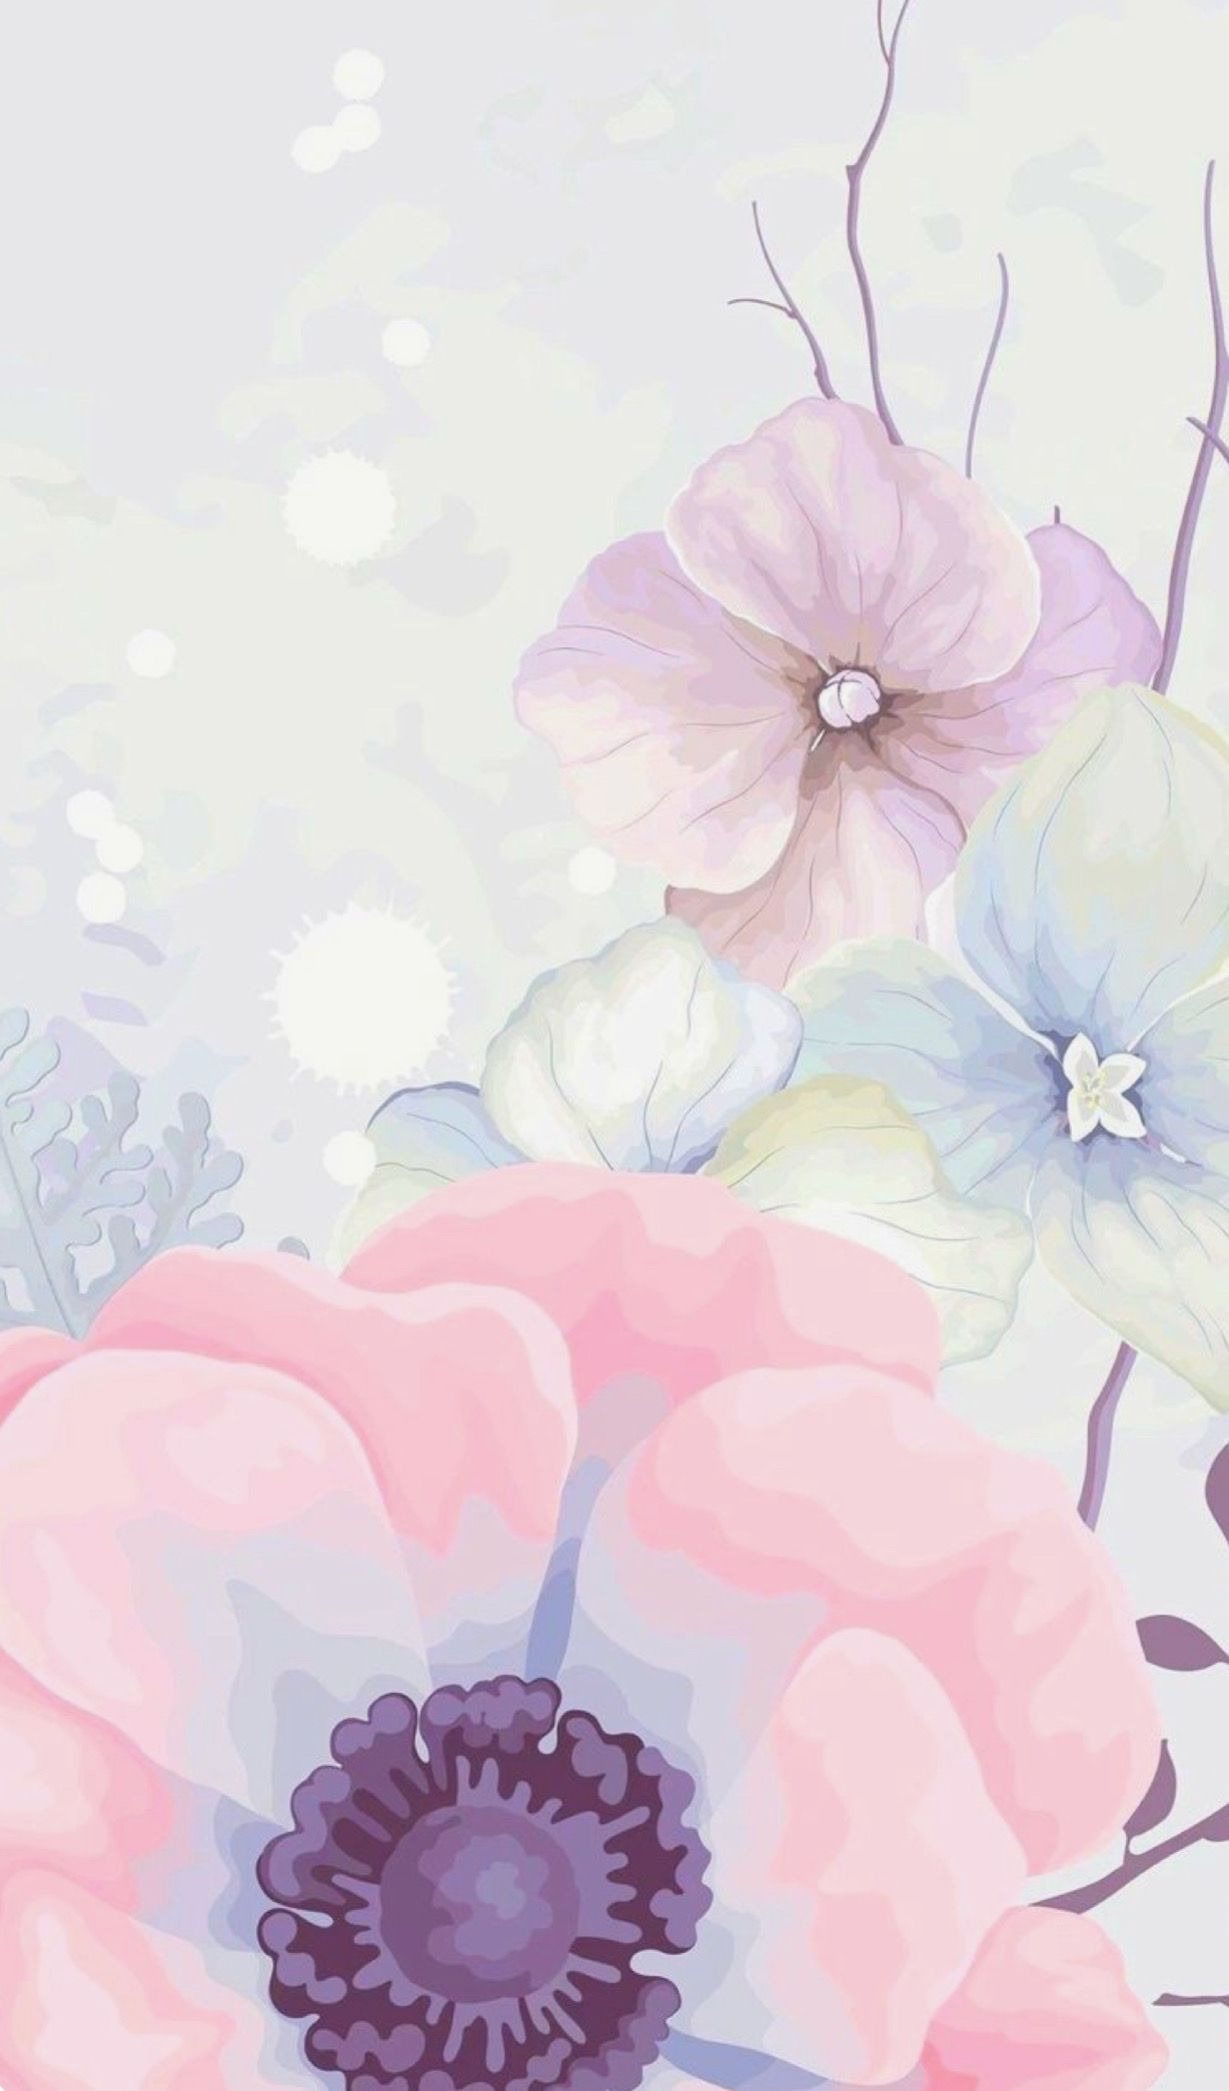 Idea By Maryam On Wallpapers Pink Flowers Wallpaper Flowery Wallpaper Floral Wallpaper